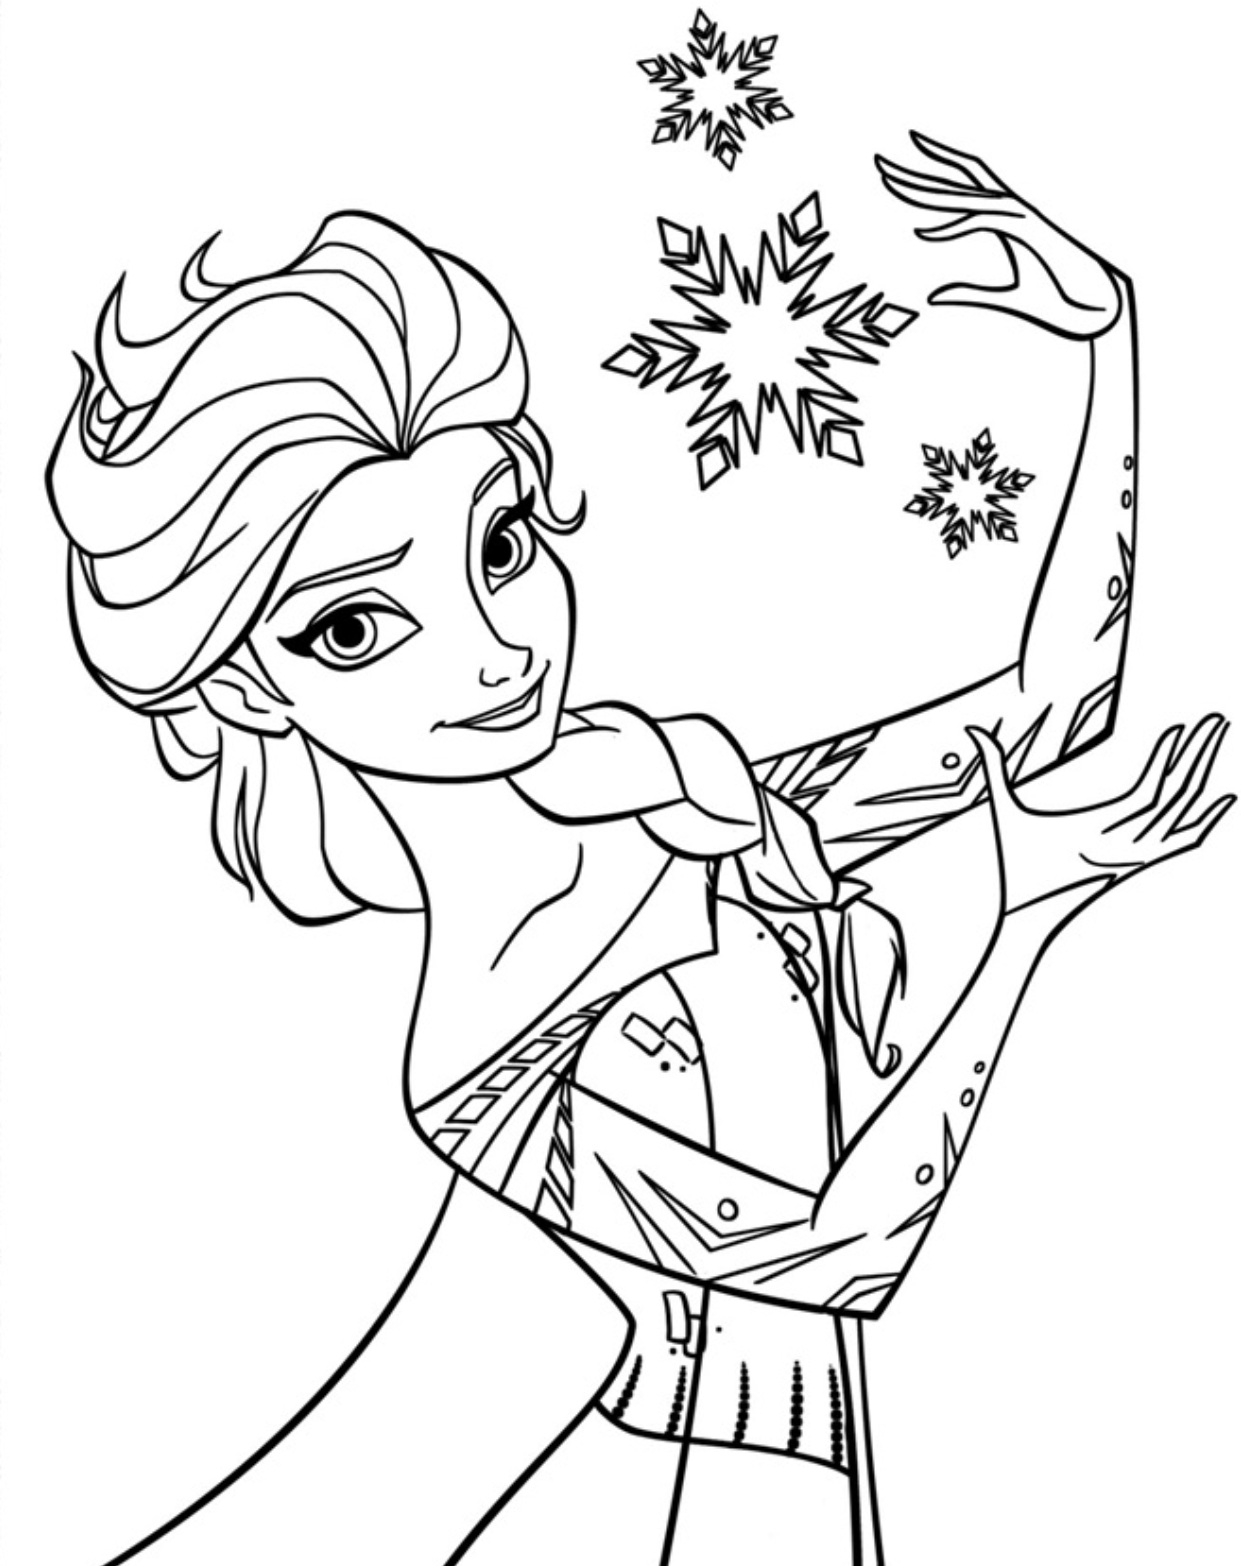 coloring pictures printable free printable elsa coloring pages for kids best printable pictures coloring